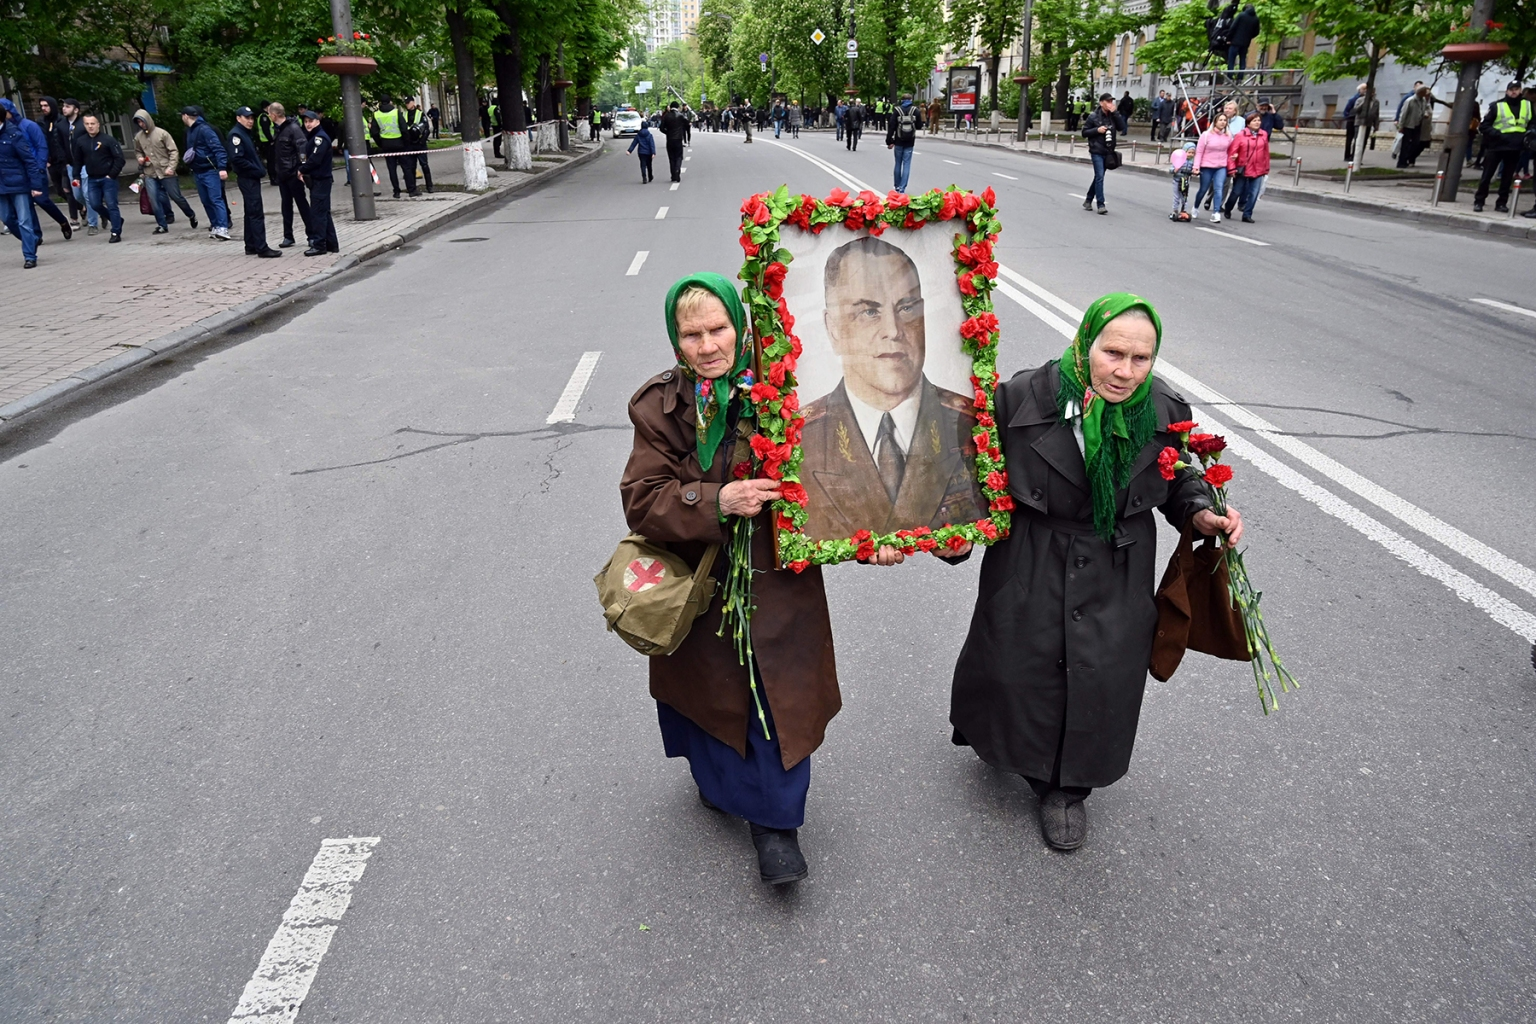 Twin sisters carry a portrait of Georgy Zhukov, marshal and commander of the Soviet Army, as they take part in Victory Day celebrations in Kiev, Ukraine, on May 9. SERGEI SUPINSKY/AFP/Getty Images